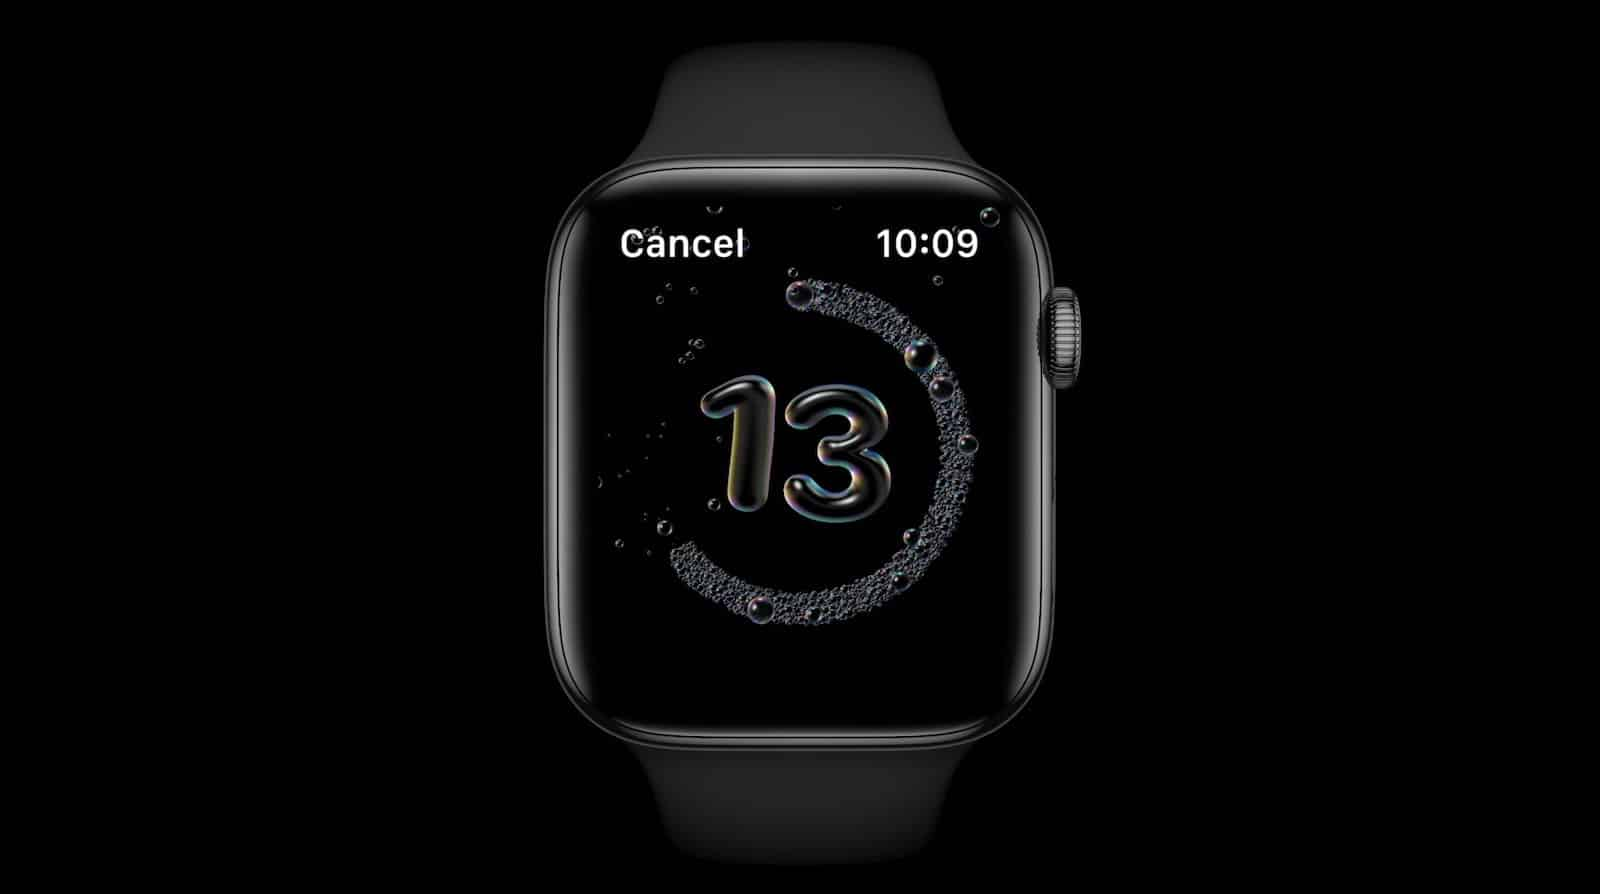 Apple Watch watchOS 7 hand washing timer